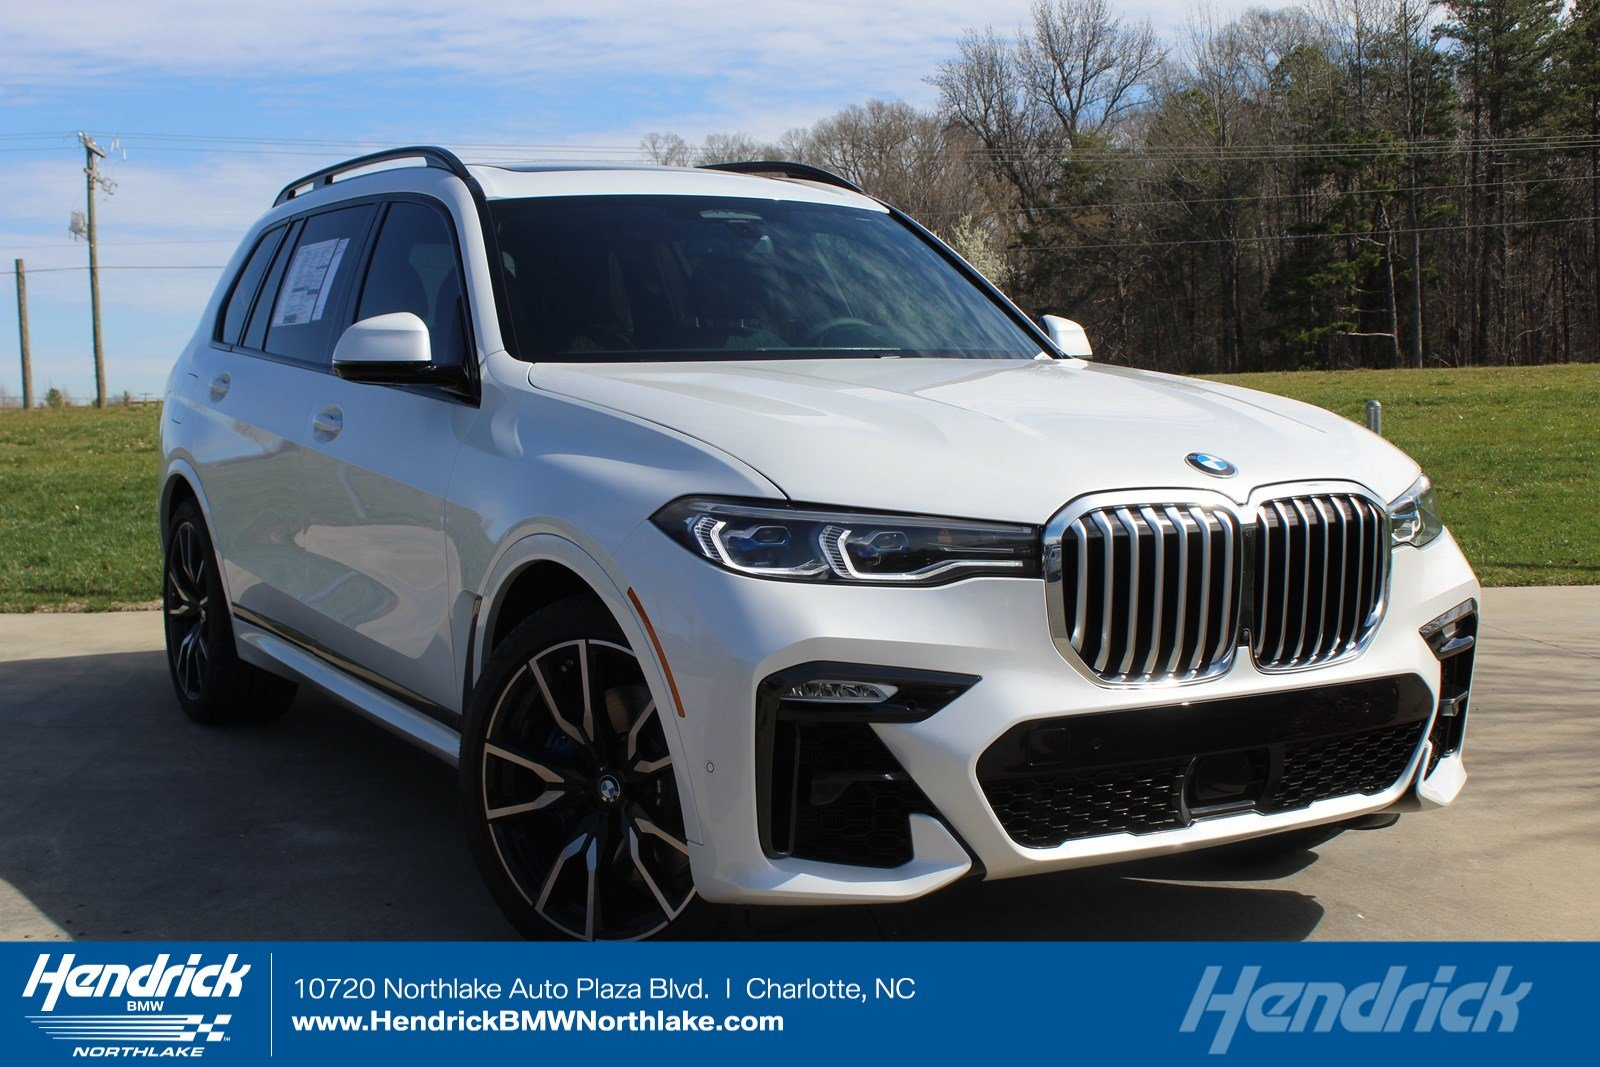 New 2019 BMW X7 xDrive50i SUV 5UXCX4C53KLB40120 for sale in Charlotte, NC